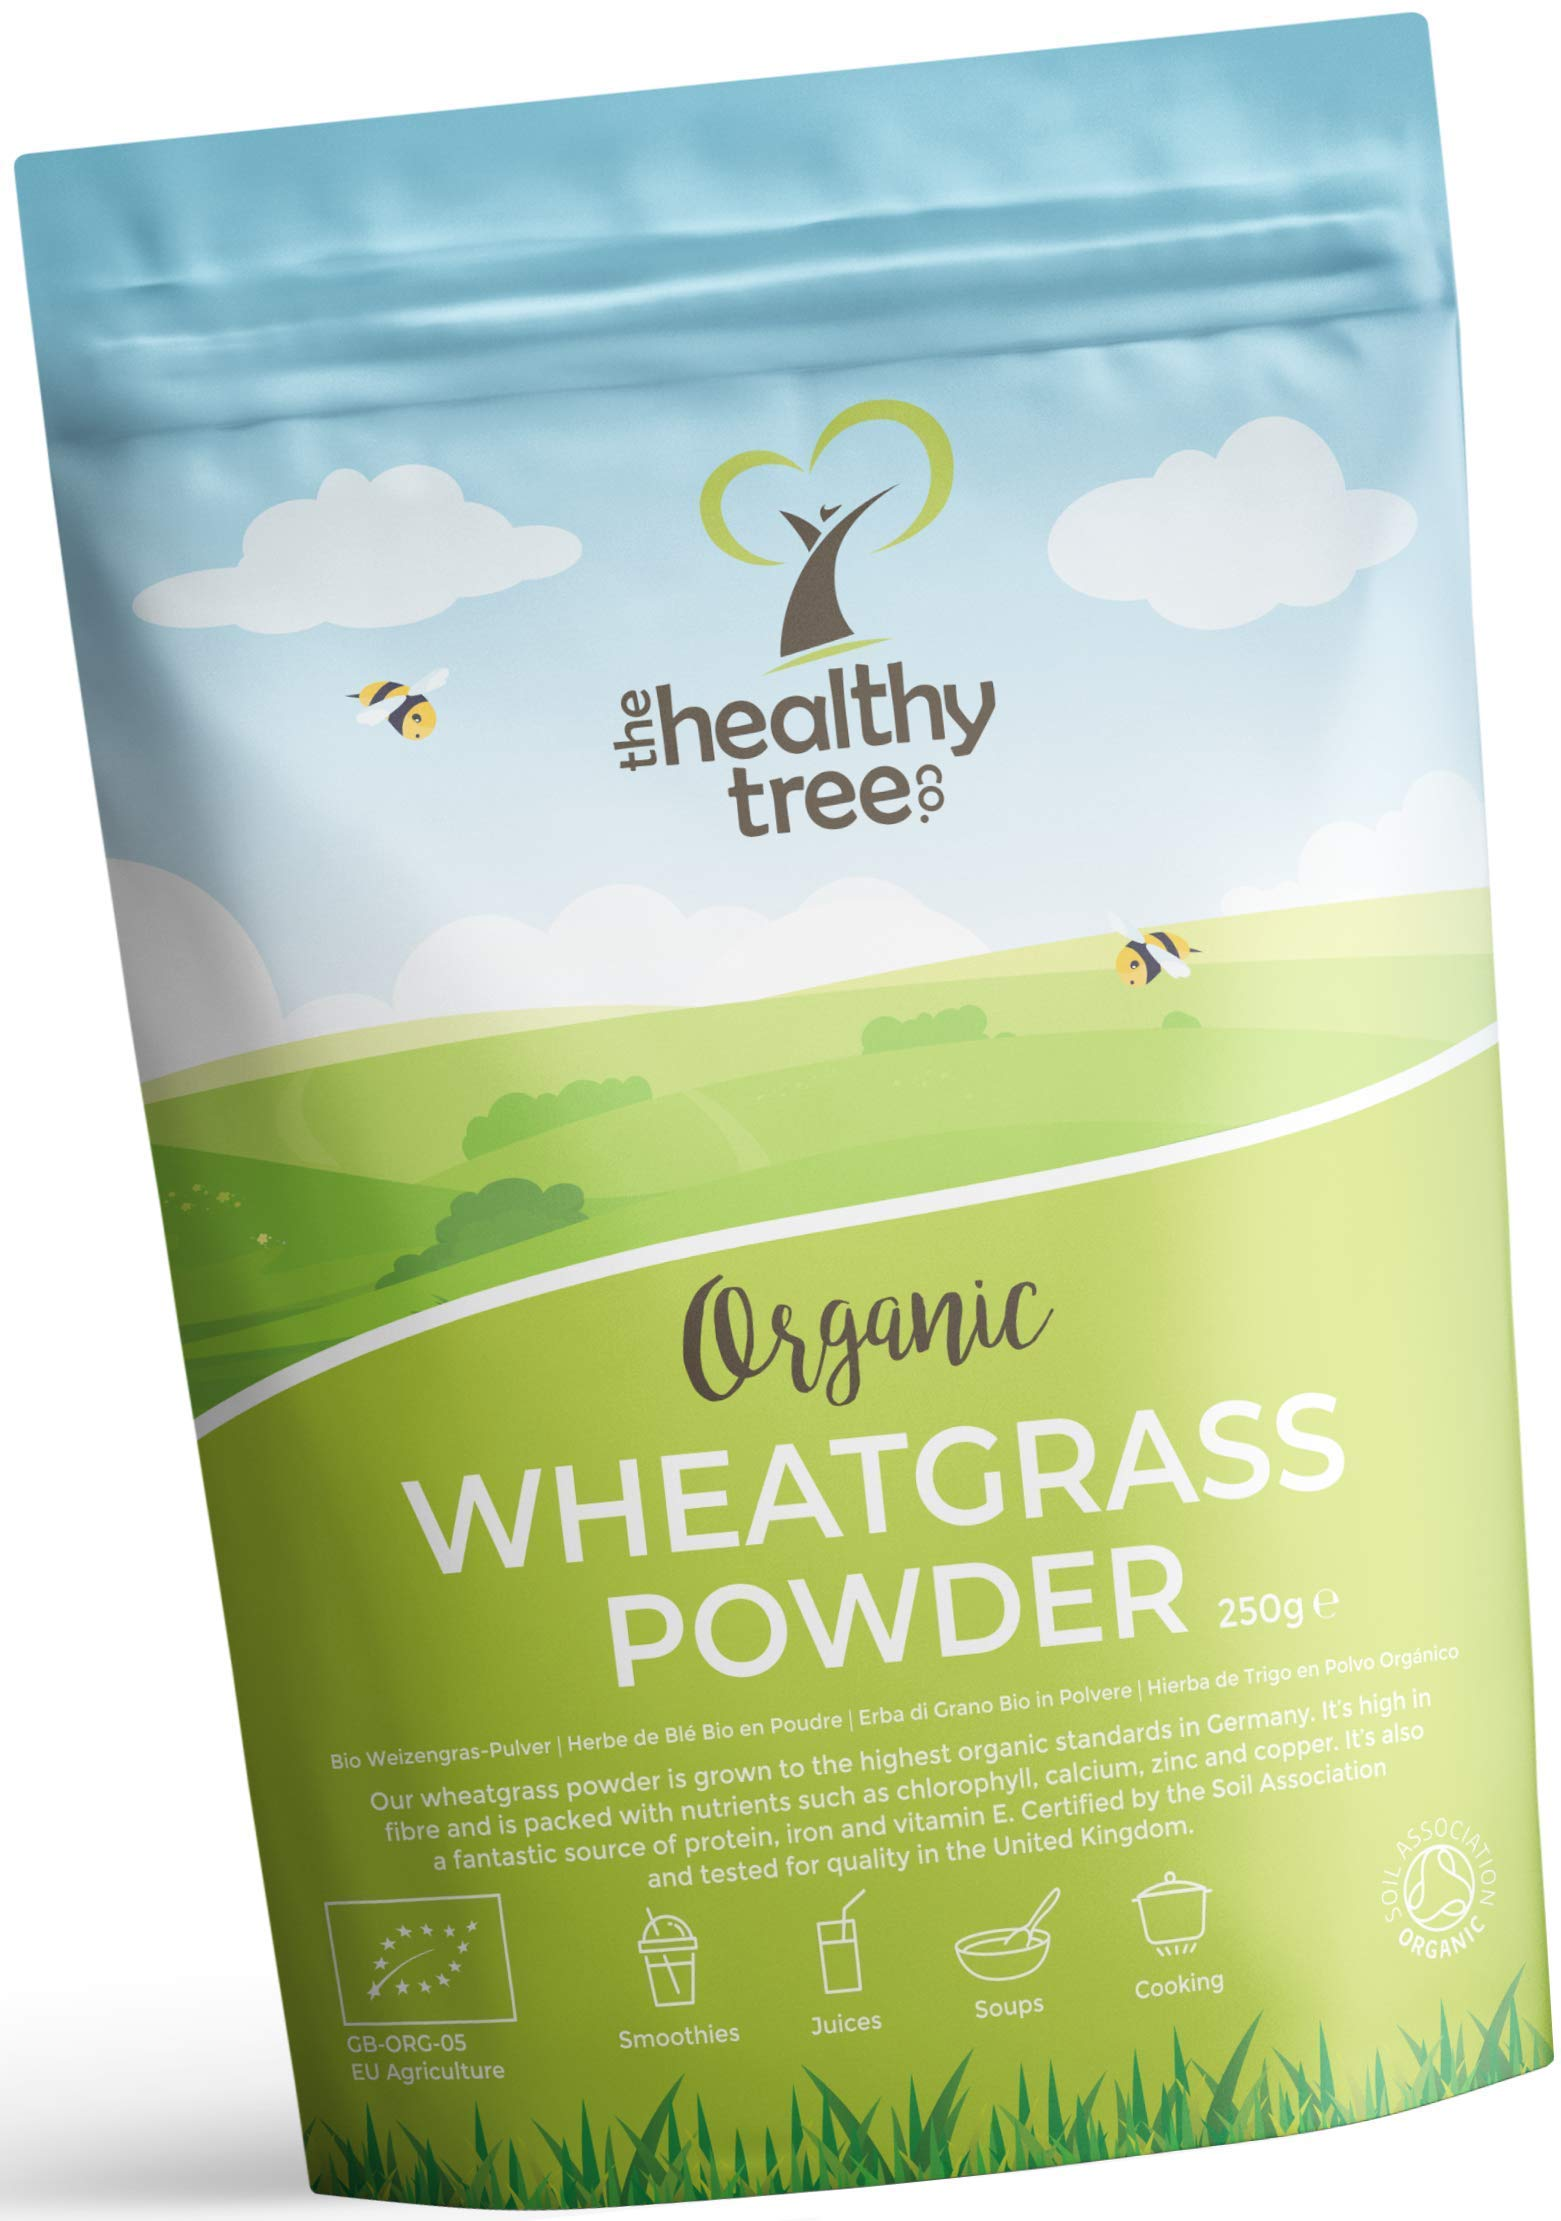 Organic Wheatgrass Powder from Germany - High in Protein, Fibre, Calcium and Chlorophyll - Perfect for Green Superfood Juices - Pure Wheatgrass Powder by TheHealthyTree Company product image